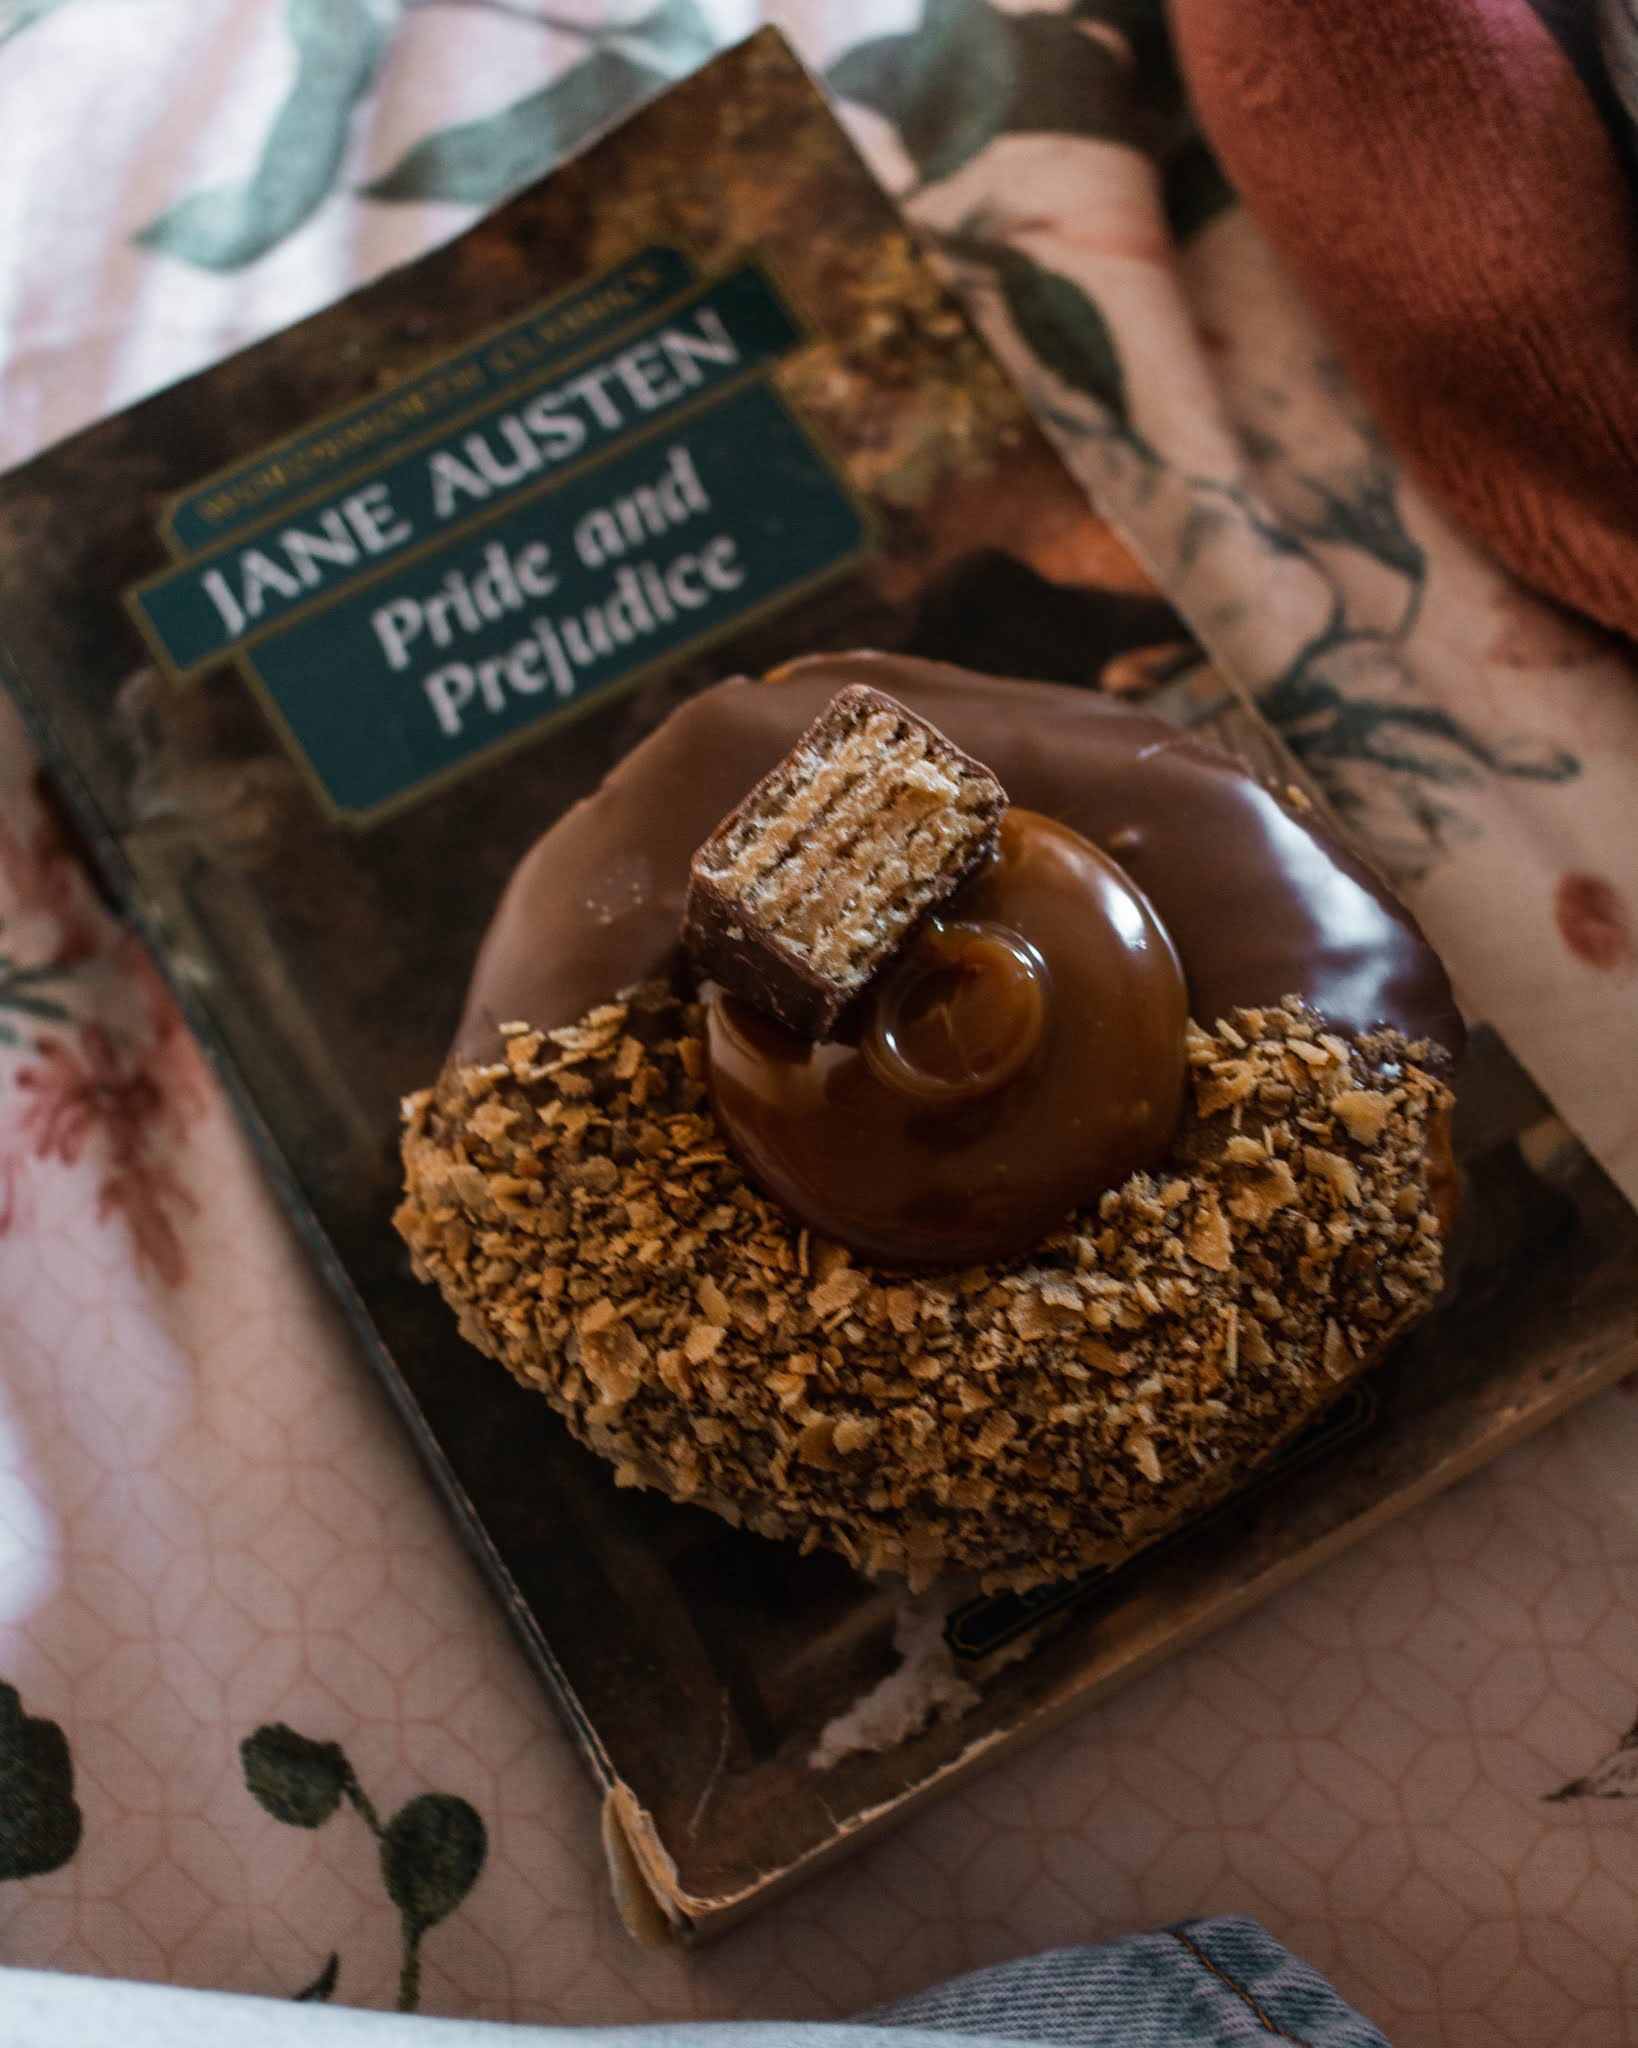 chocolate donut sitting on top of a book of pride and prejudice by jane asten